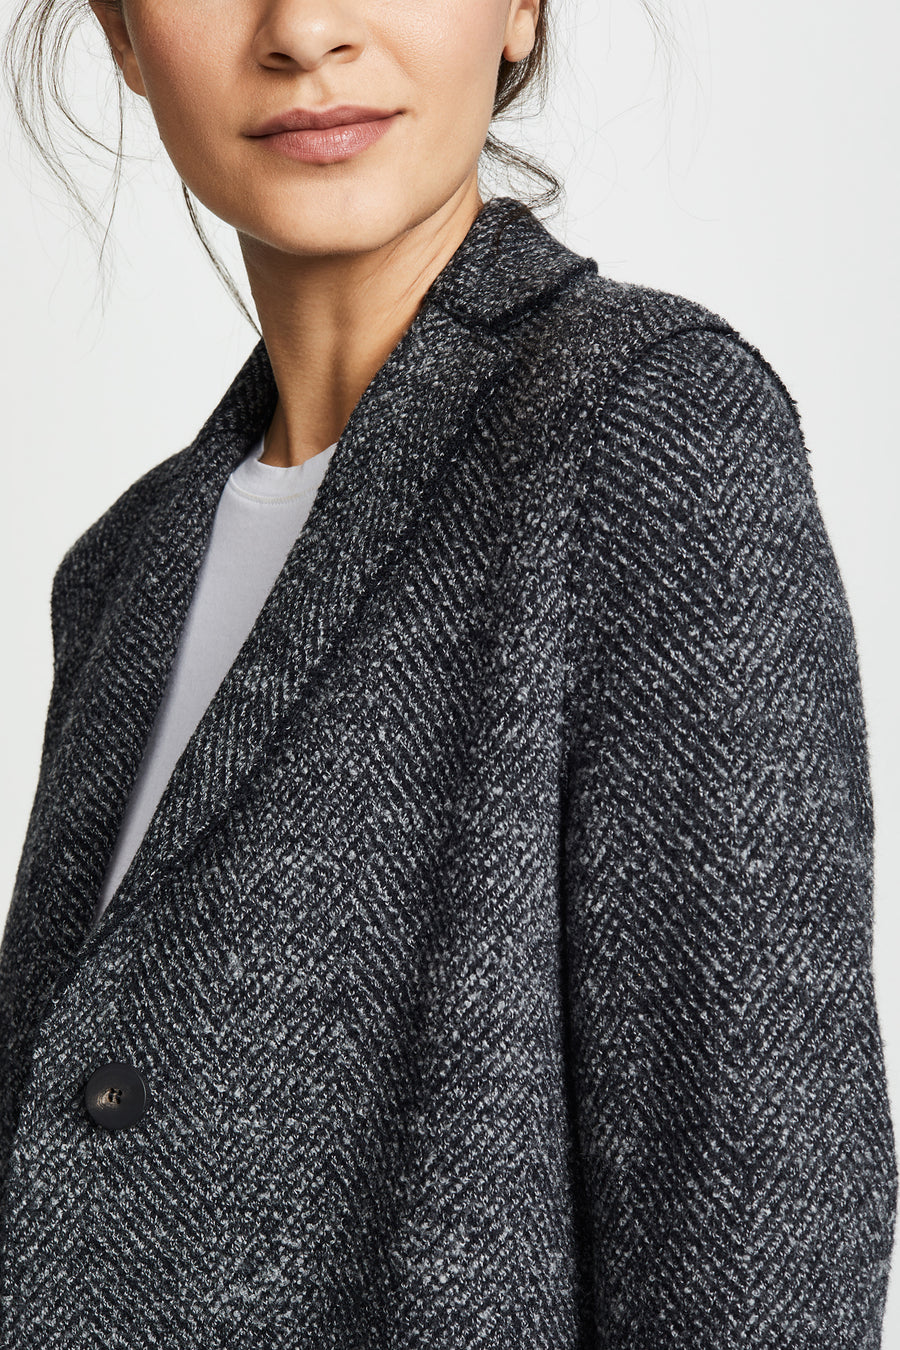 Overcoat Herringbone Coat - Anthracite